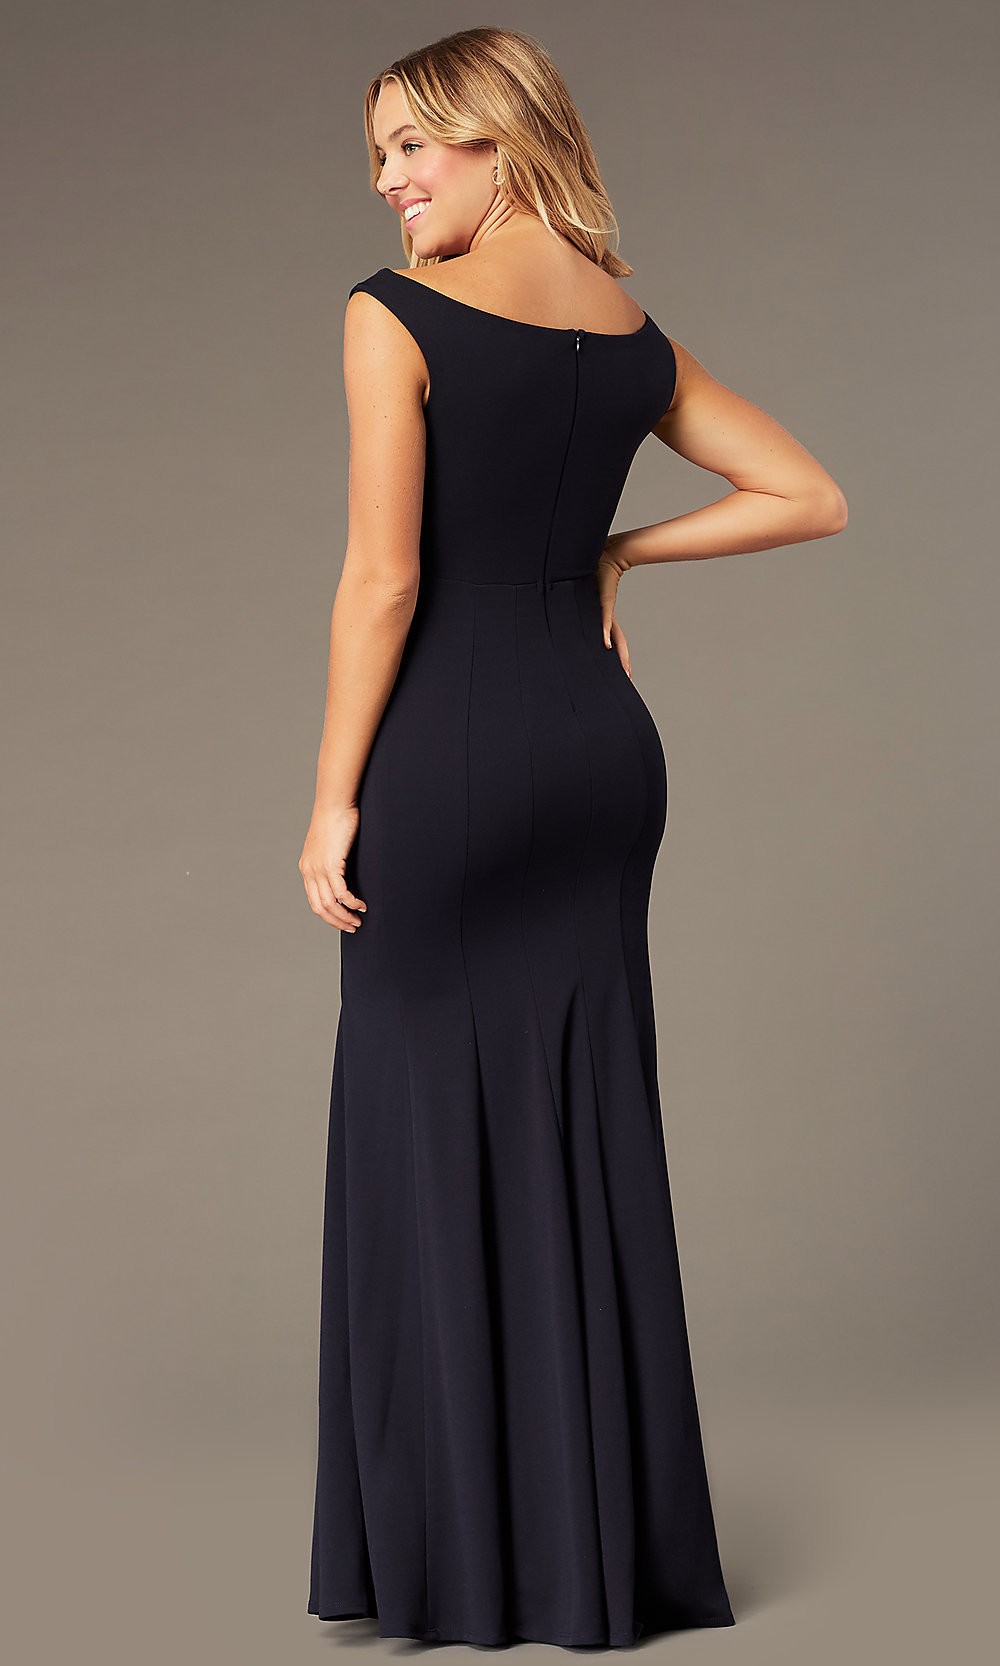 One-Shoulder Long-Sleeve Sequin Party Dress - PromGirl